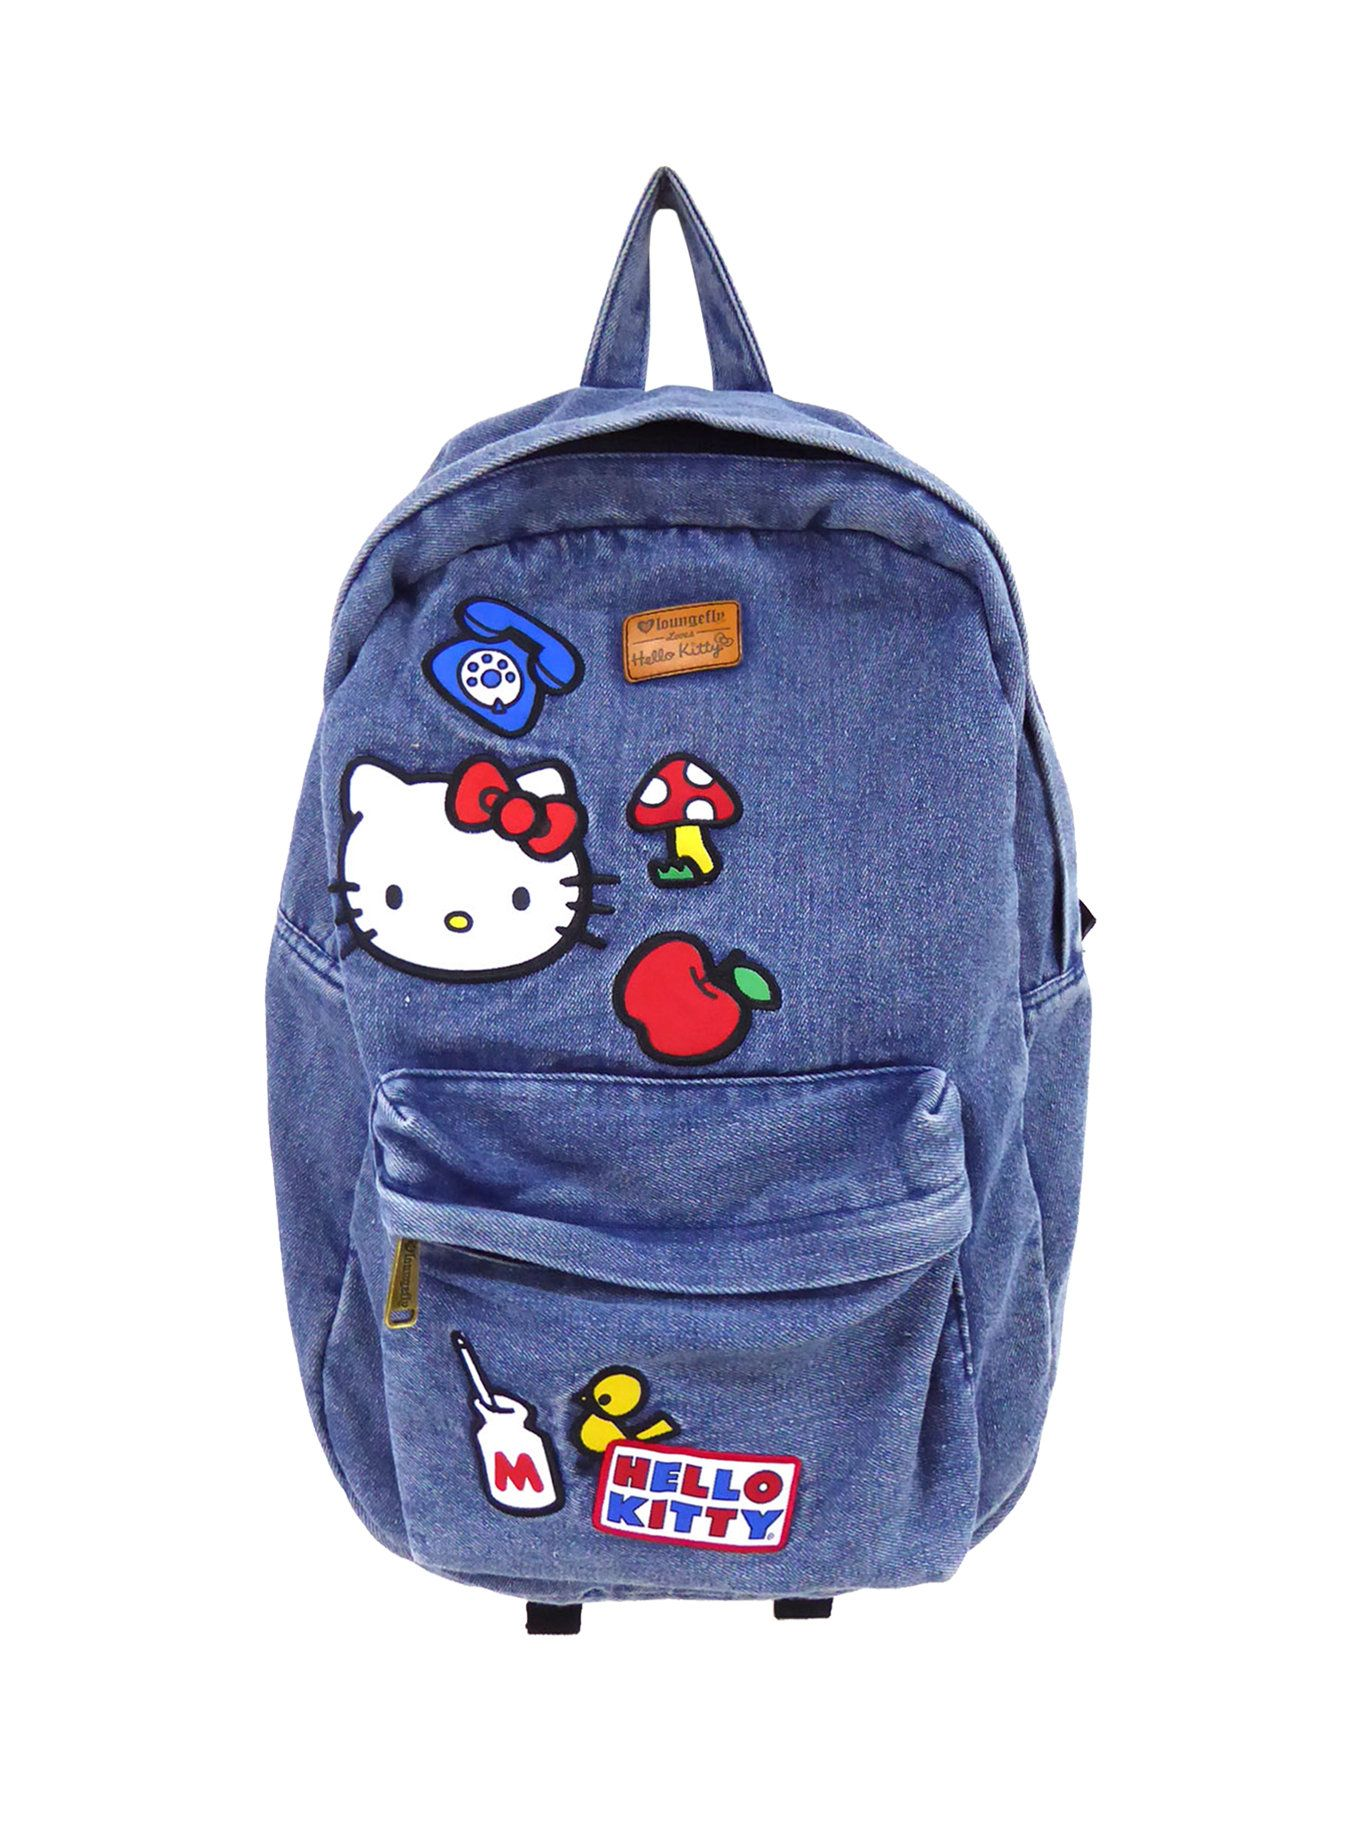 527f44e3e5 Loungefly Hello Kitty Patches Denim Backpack